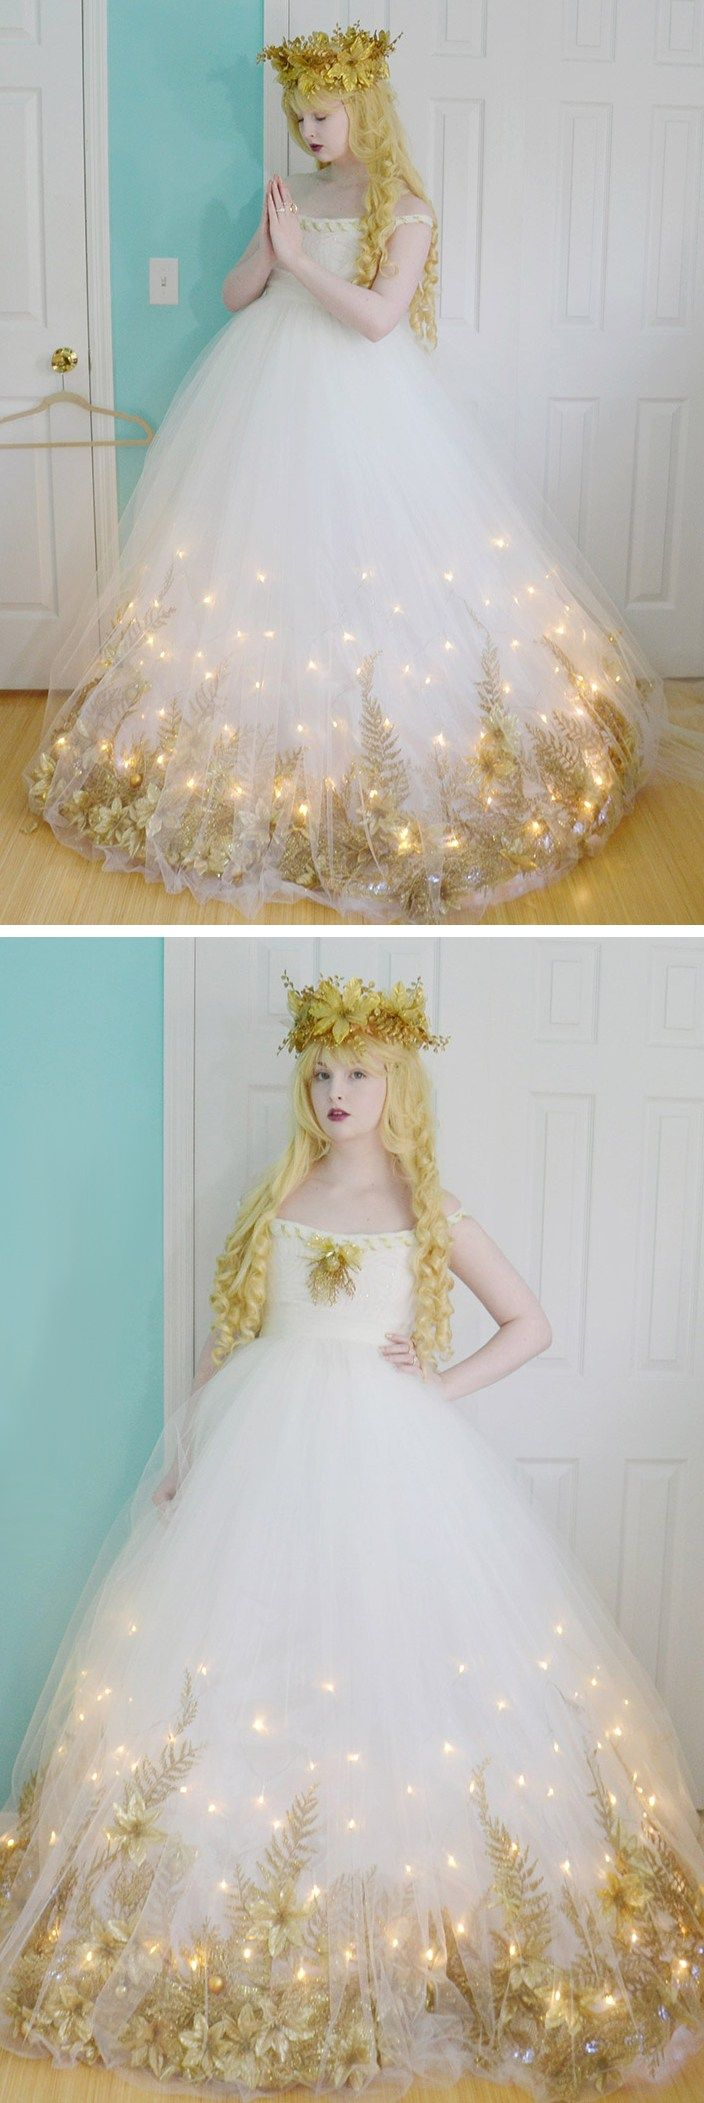 Awesome diy inspiration a light up fairy garden tulle maxi dress